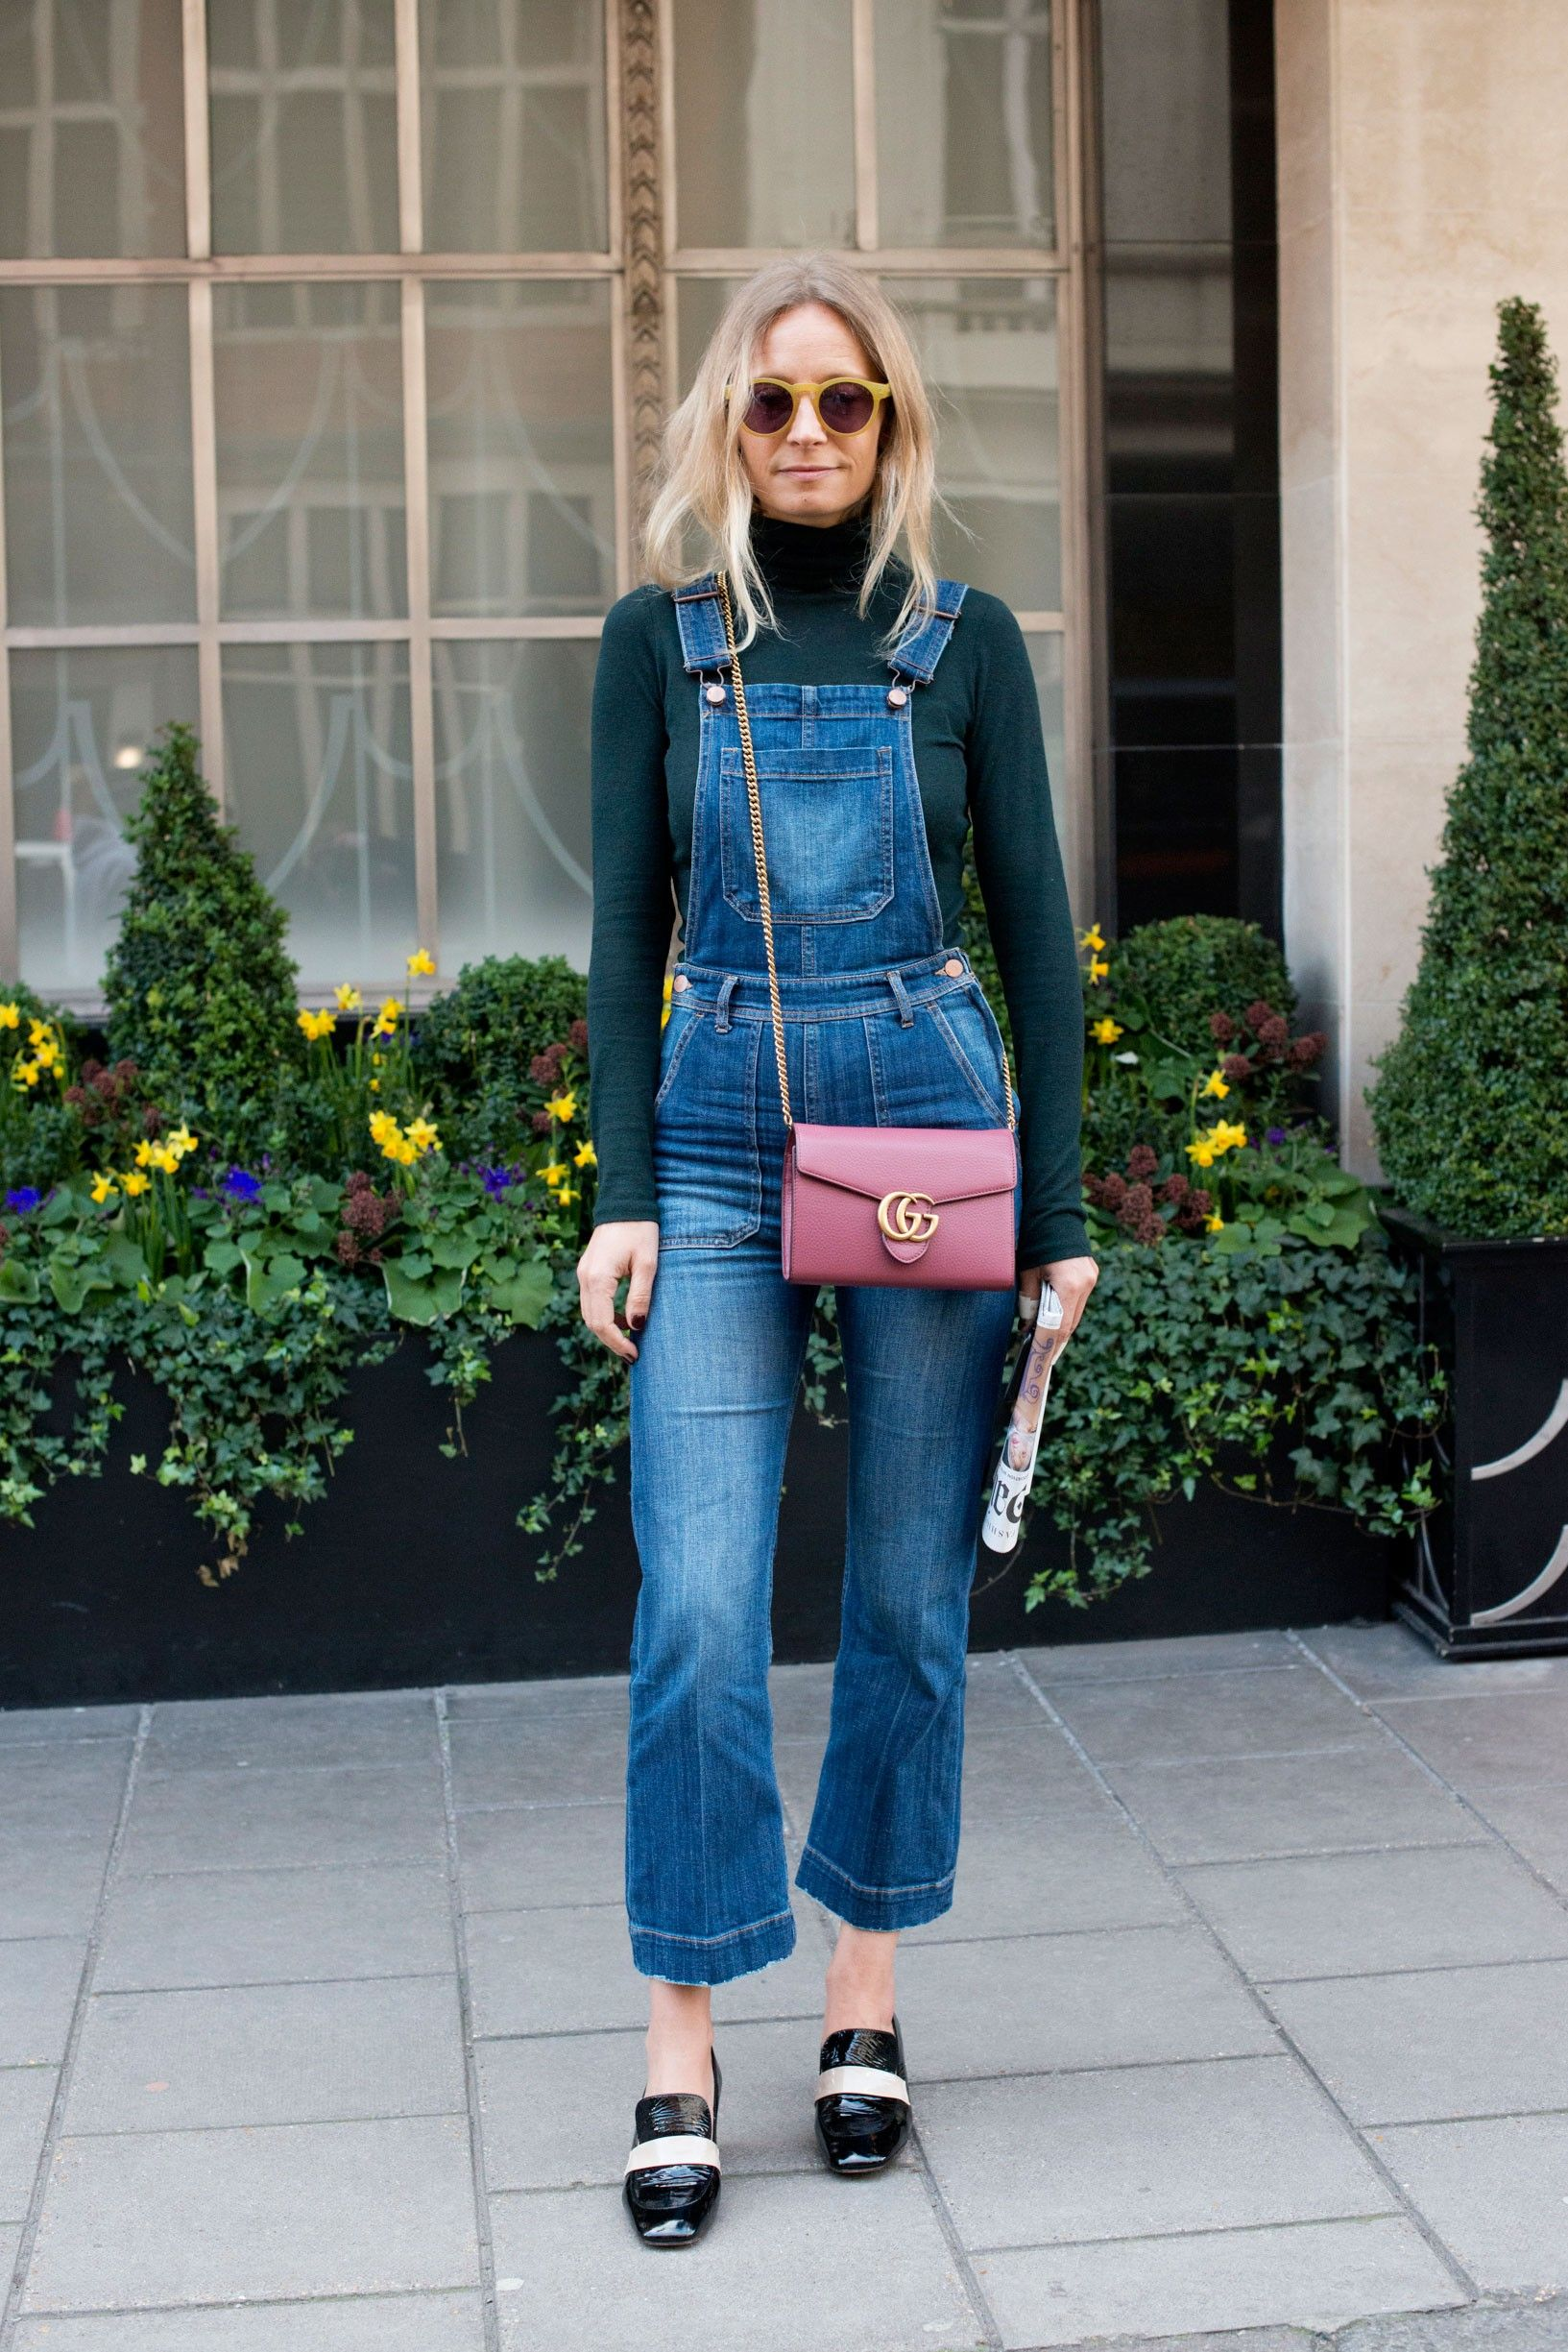 f104b30309 3 Wardrobe Heroes That Will Help You Transition From Winter to ...